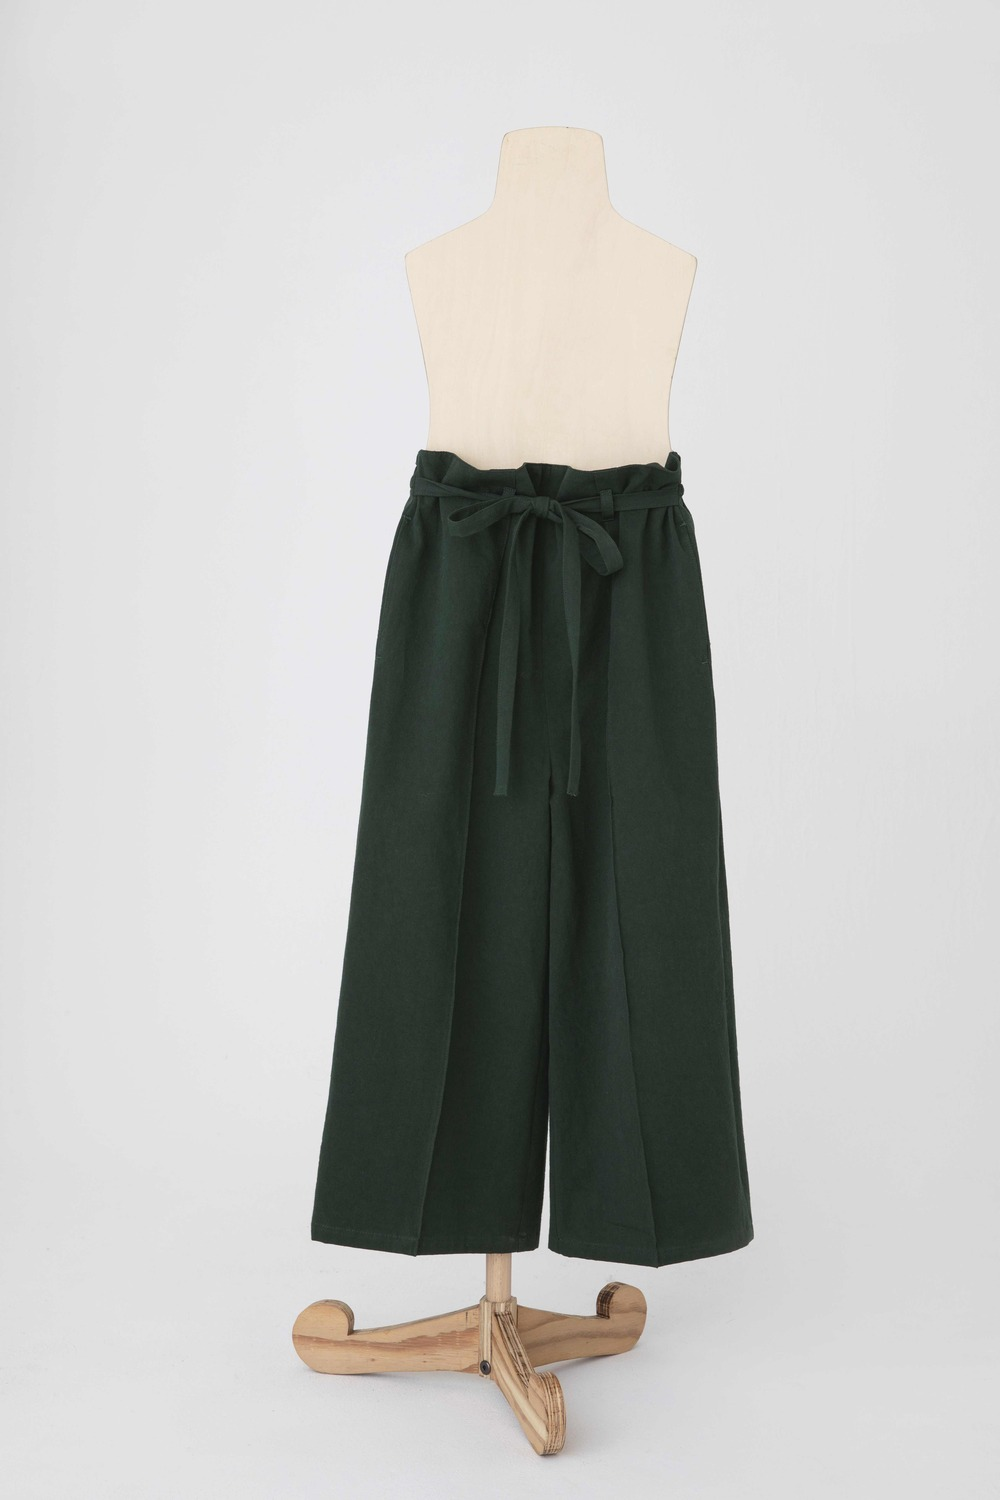 antique burberry pants /forest green1